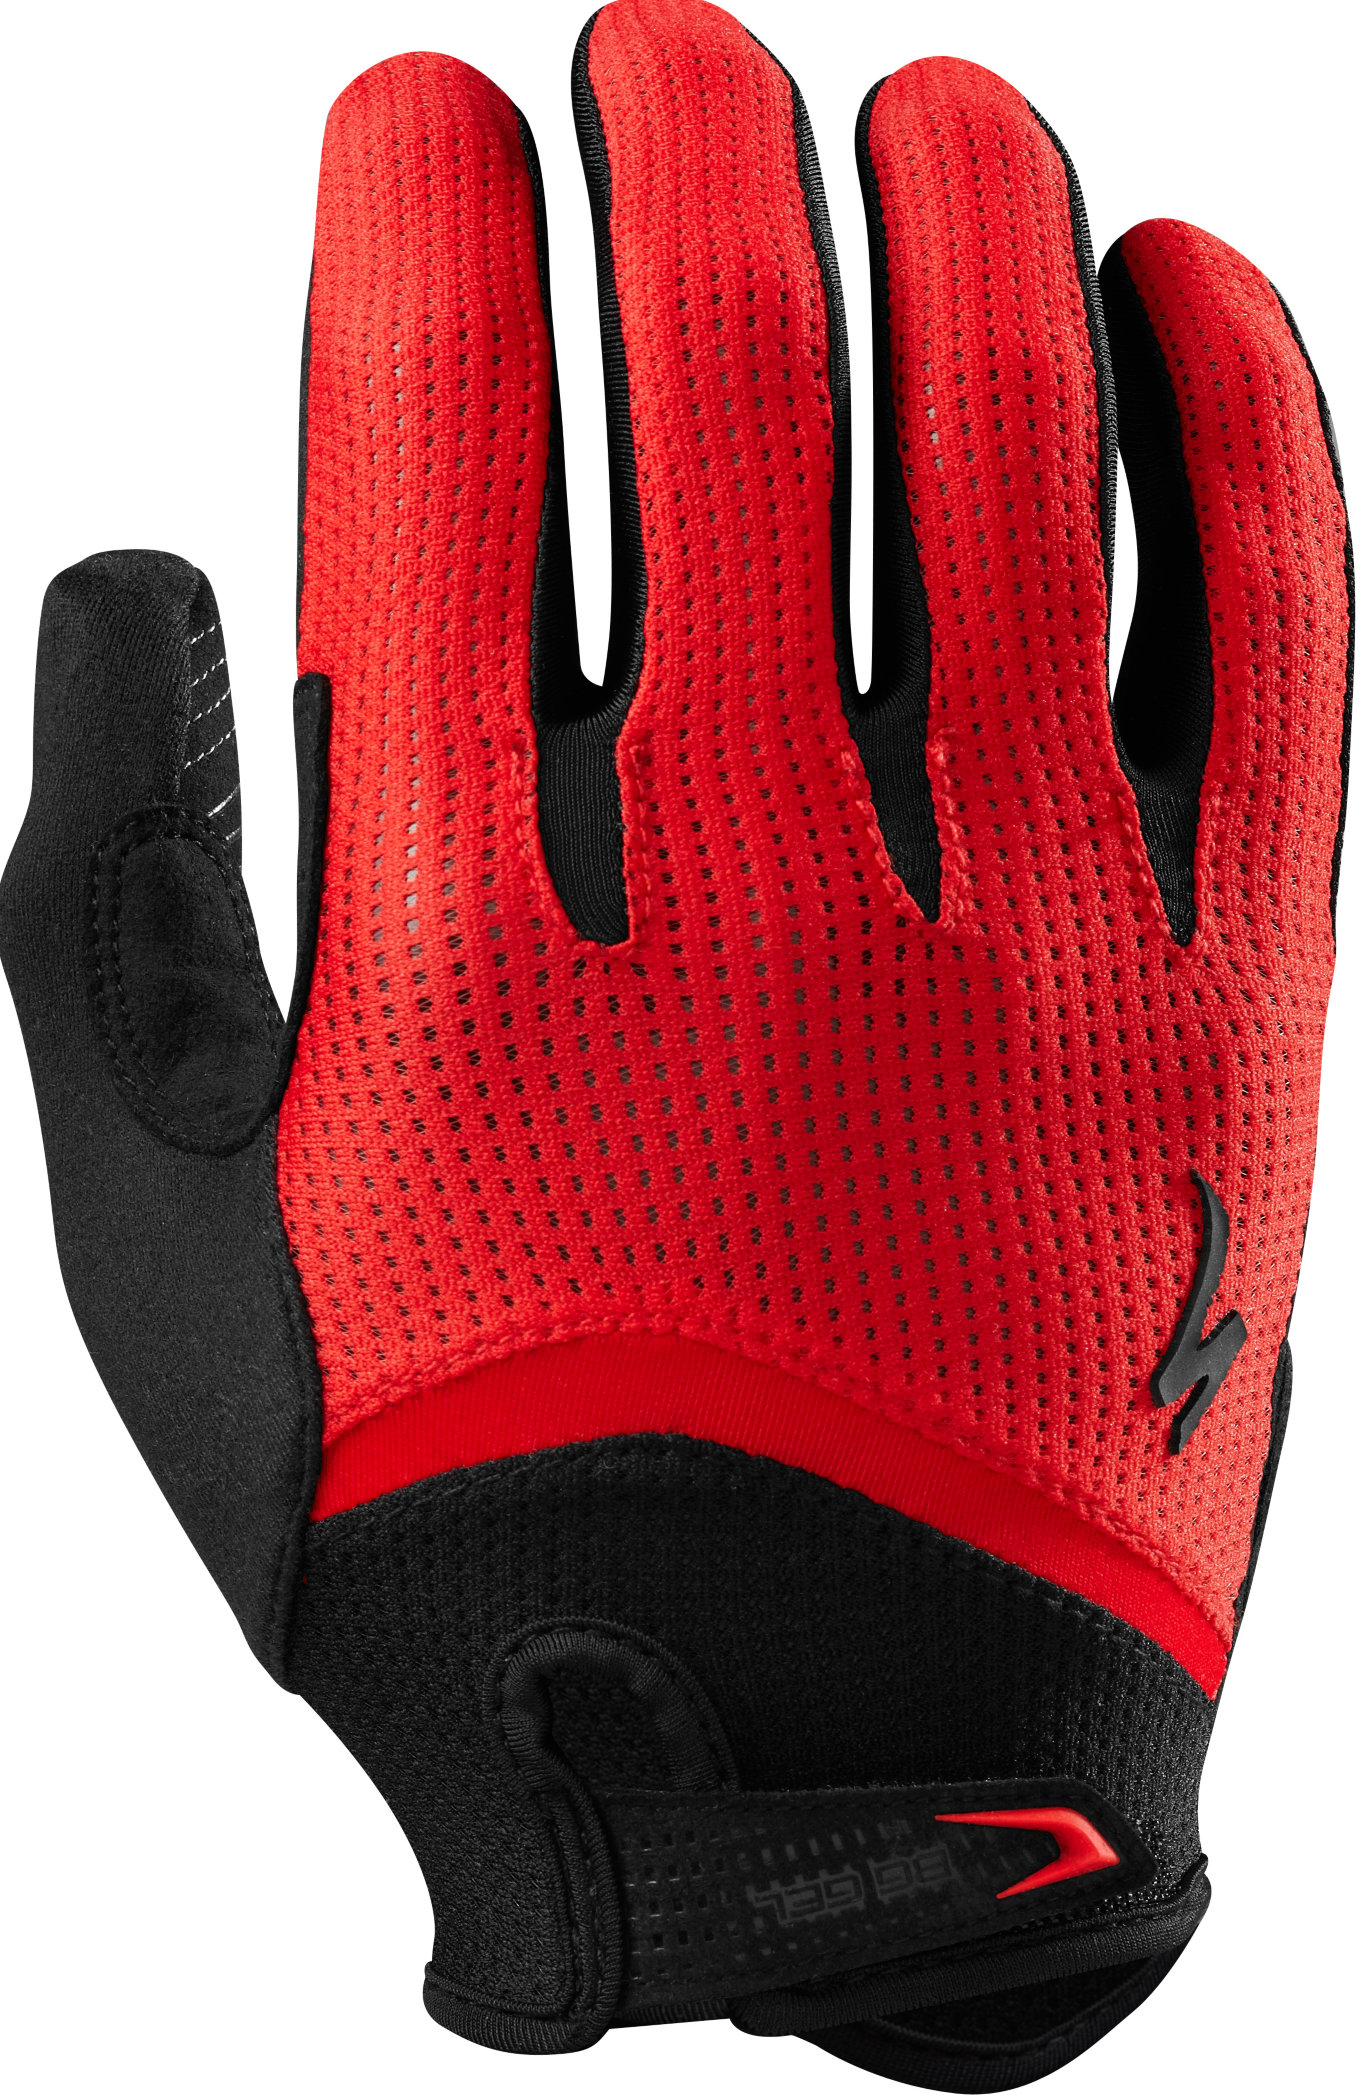 SPECIALIZED BG GEL GLOVE LF RED S - Bikedreams & Dustbikes